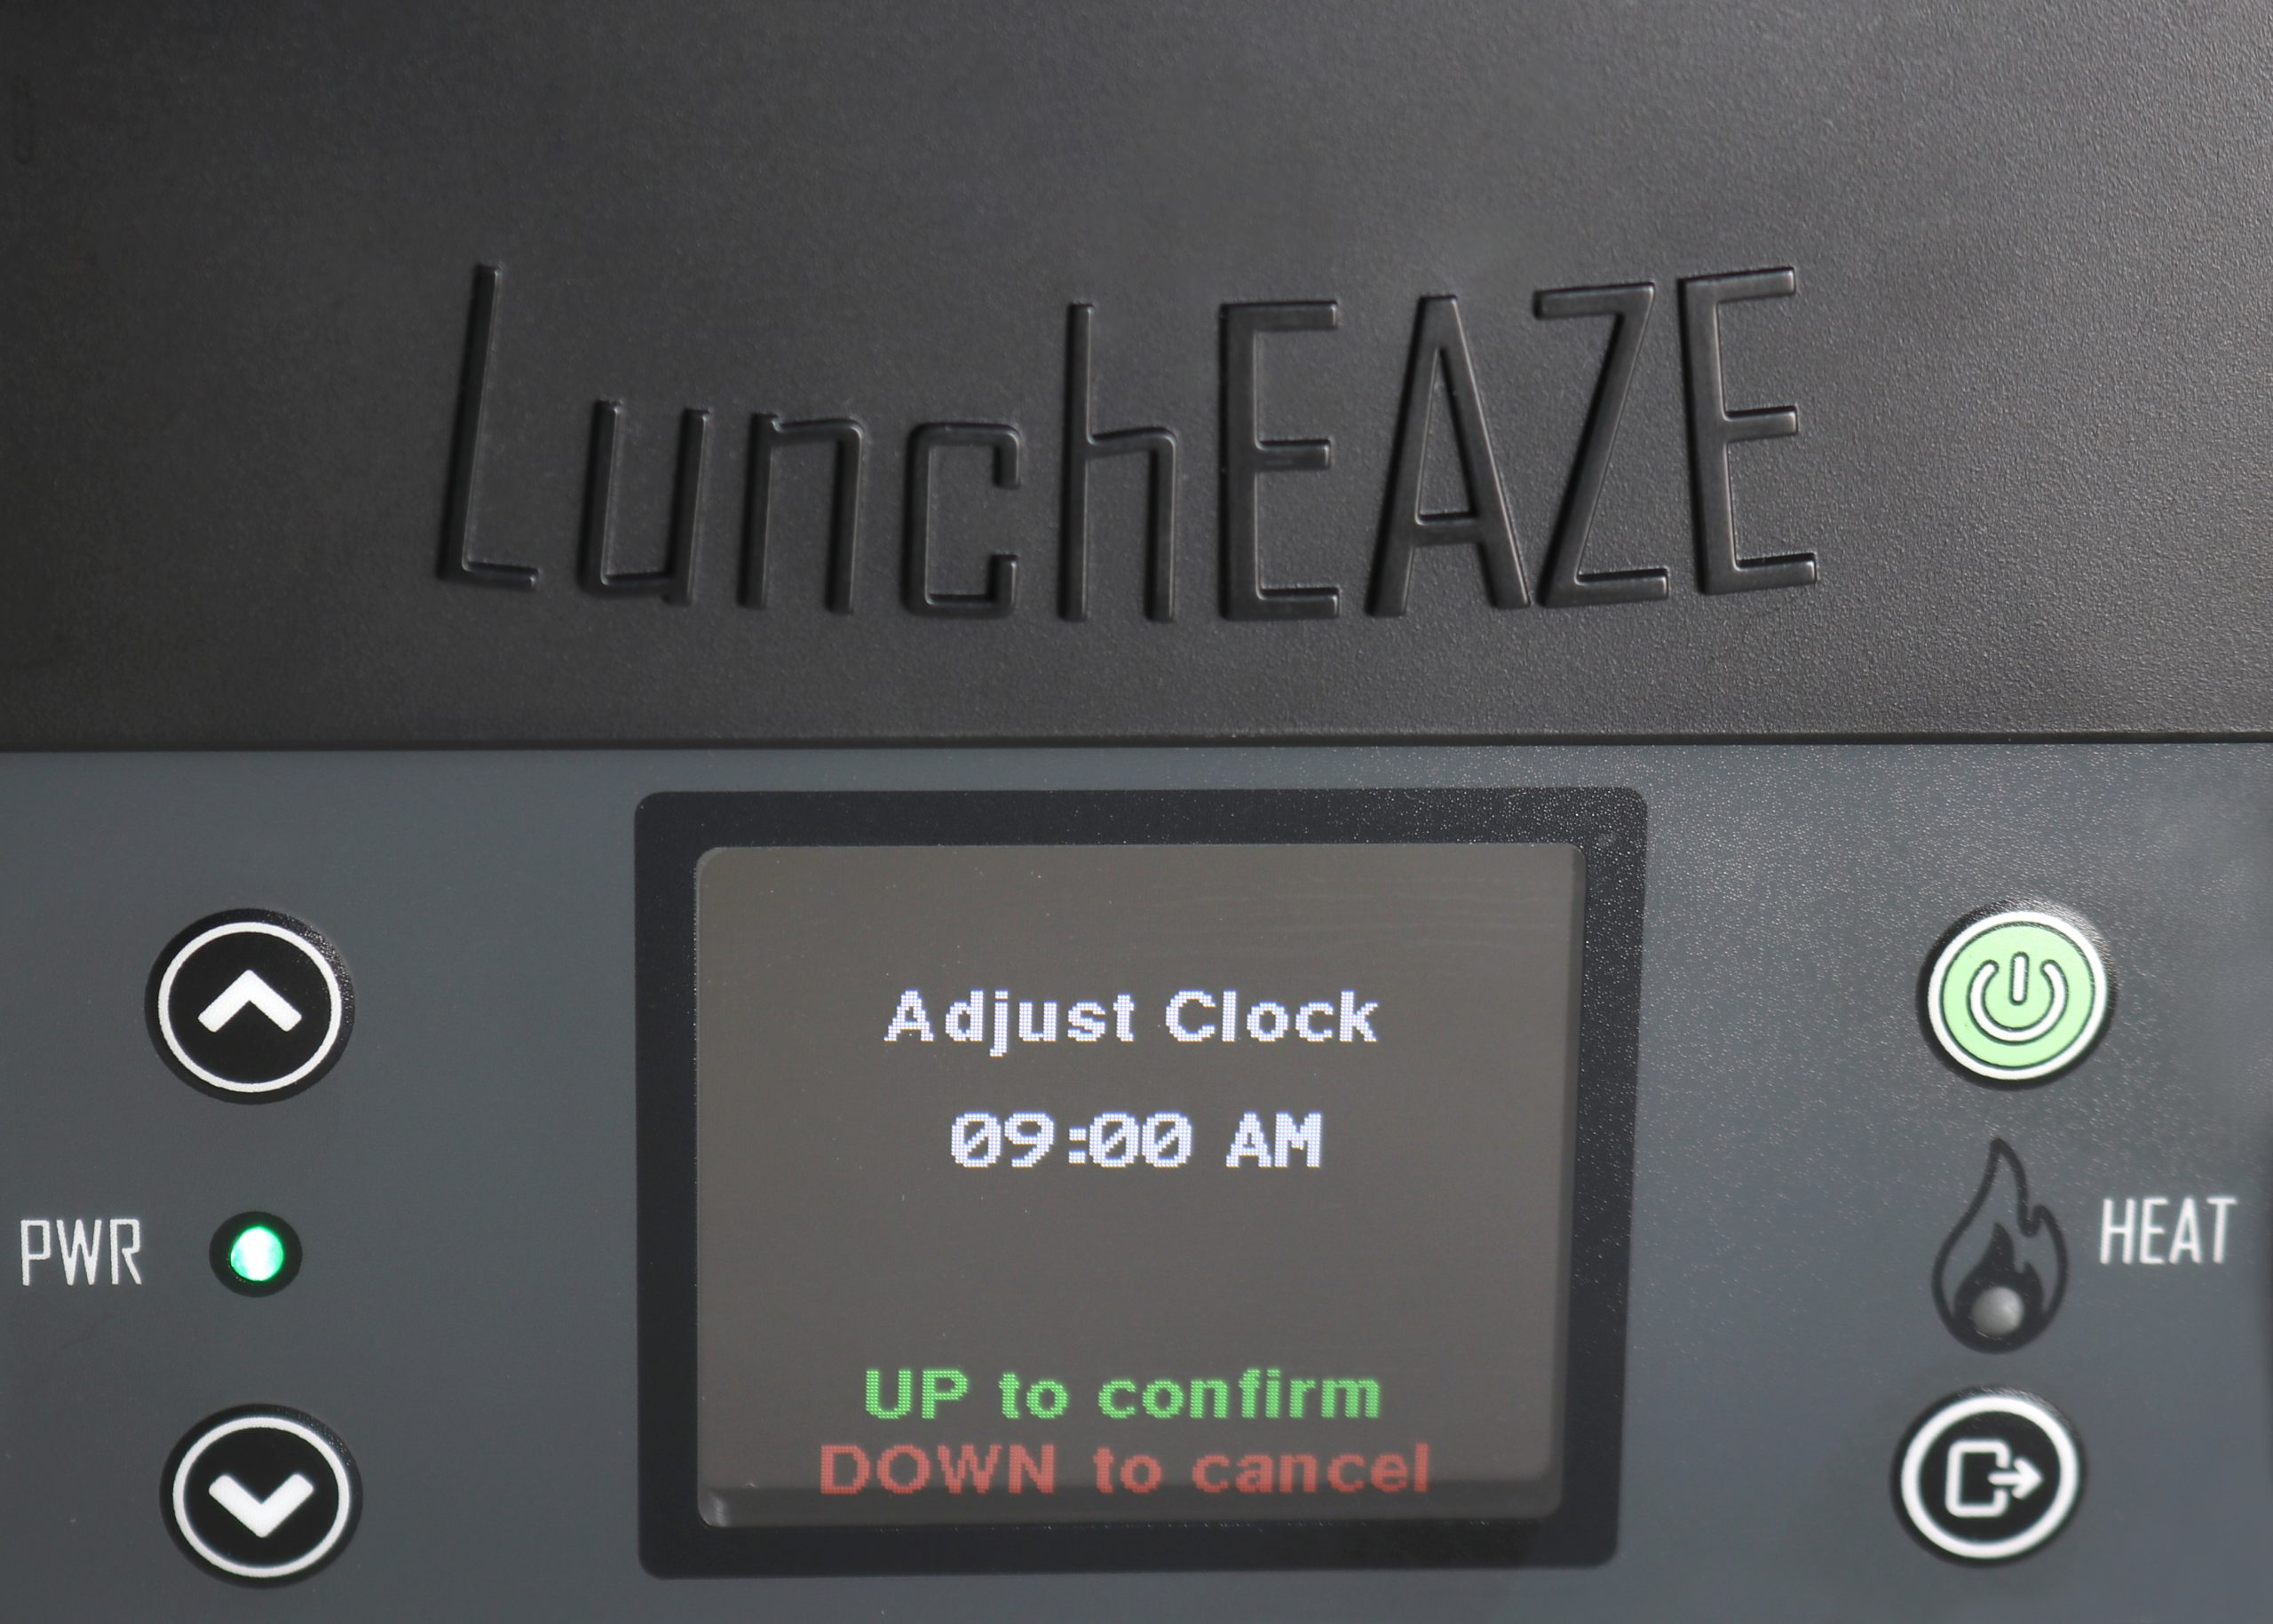 LunchEAZE user manual